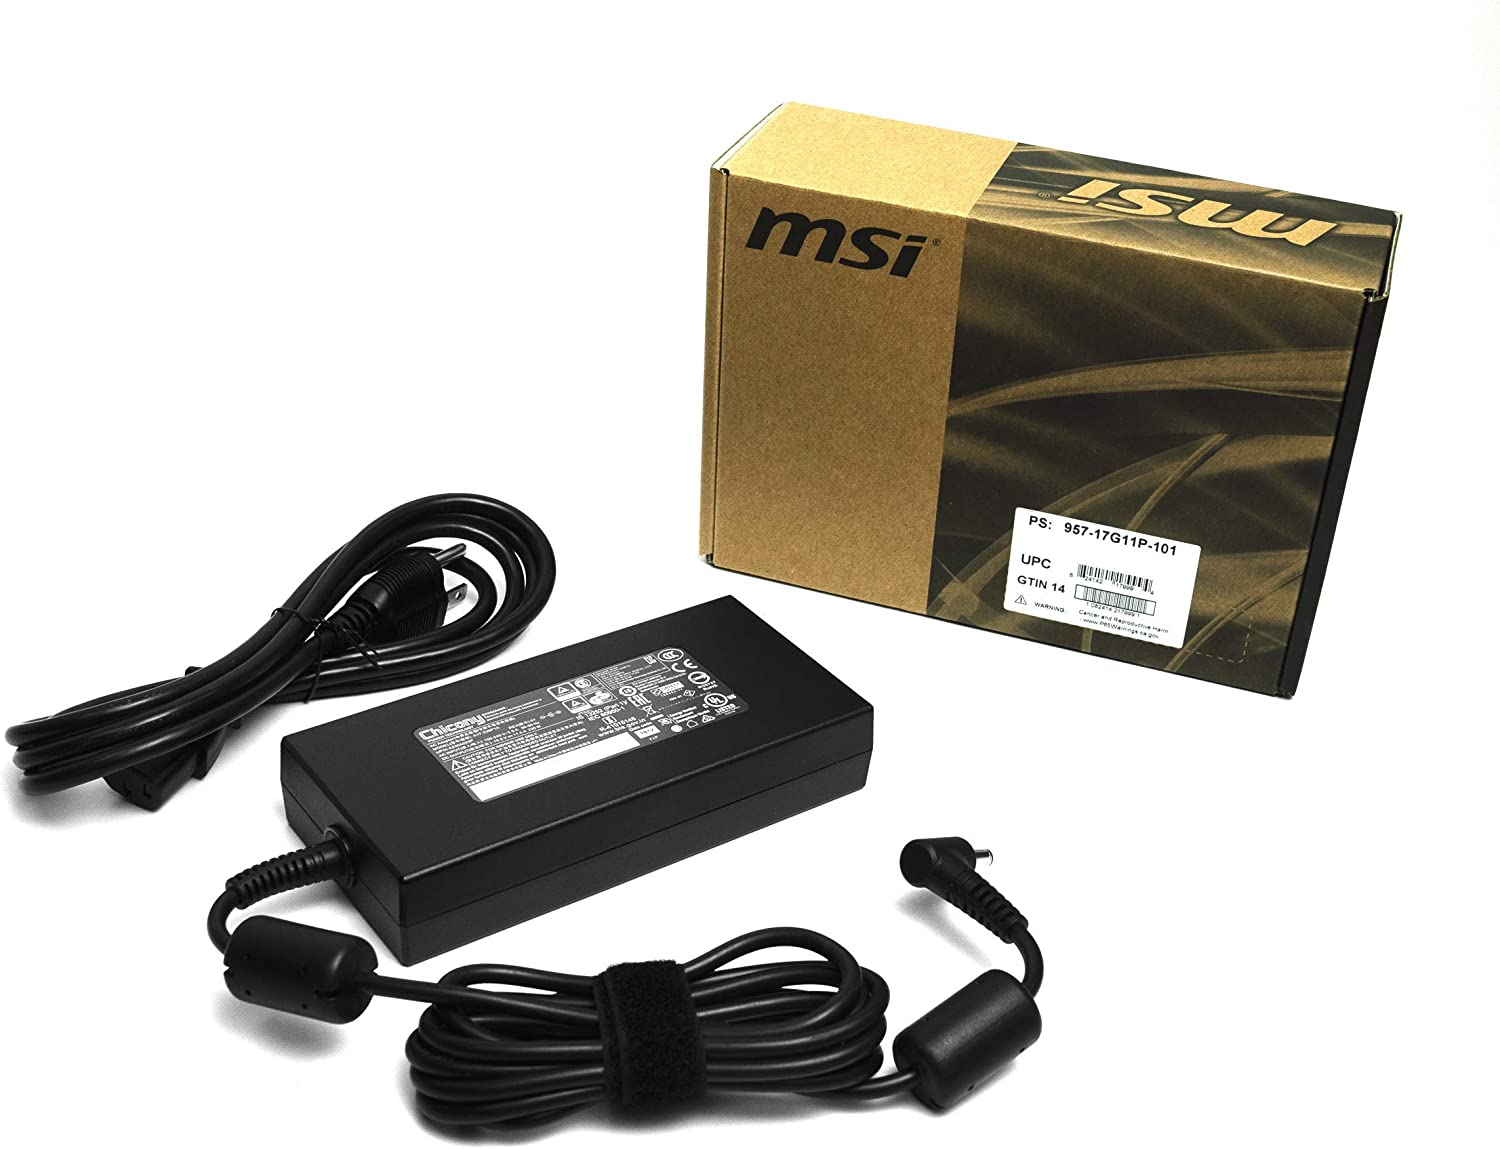 Genuine 230W AC/DC Power Adapter (957-17G11P-101) for MSI GS65/GS75 with RTX2070/RTX2080 Laptops